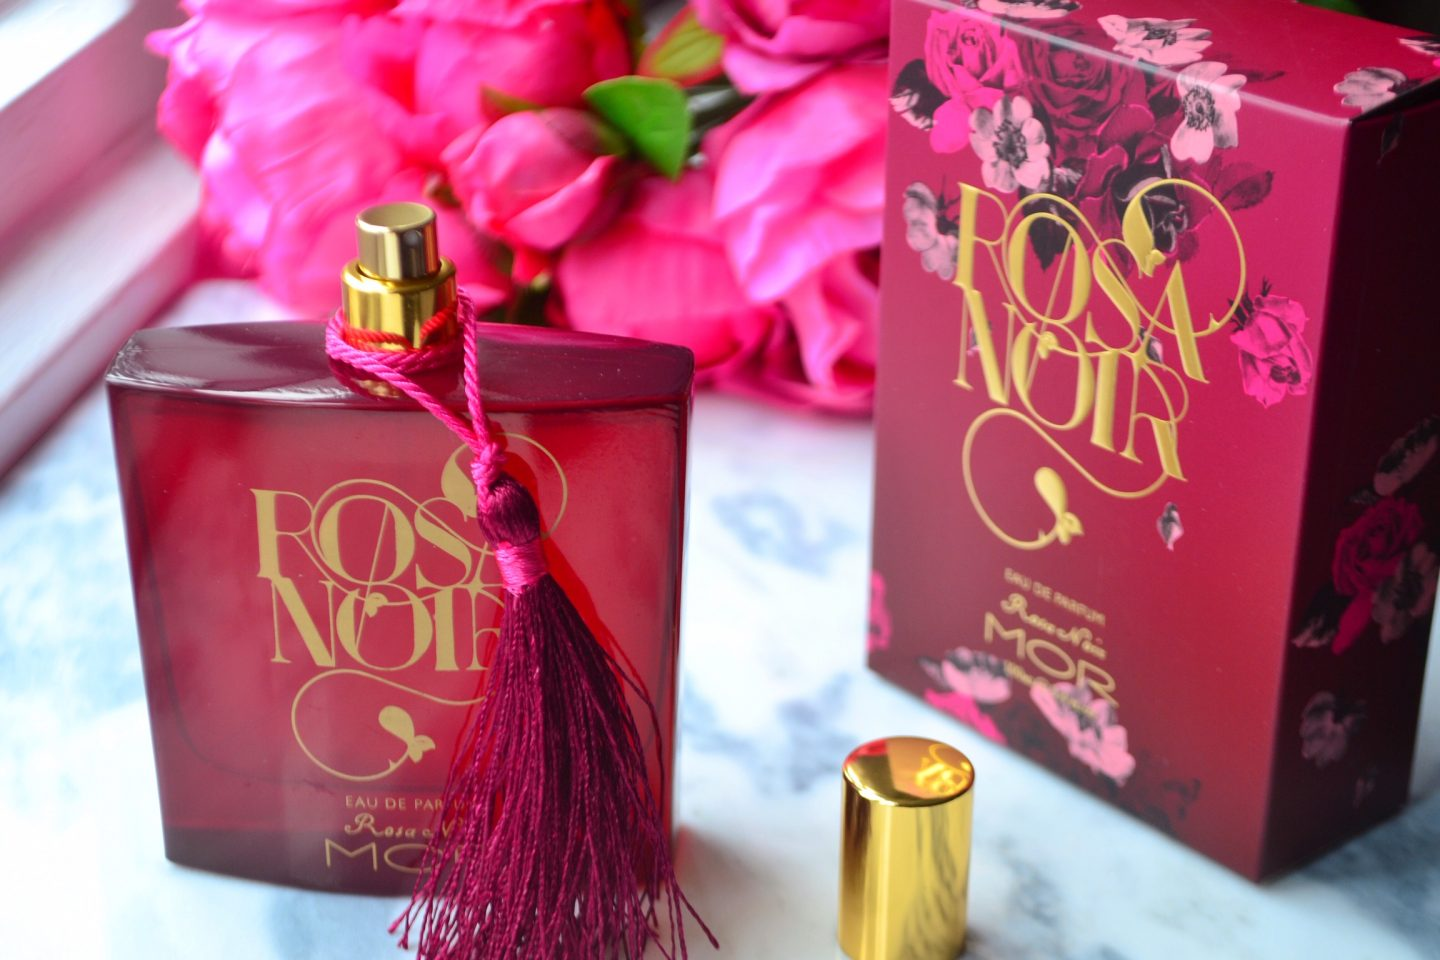 rosa-noir-perfume-review